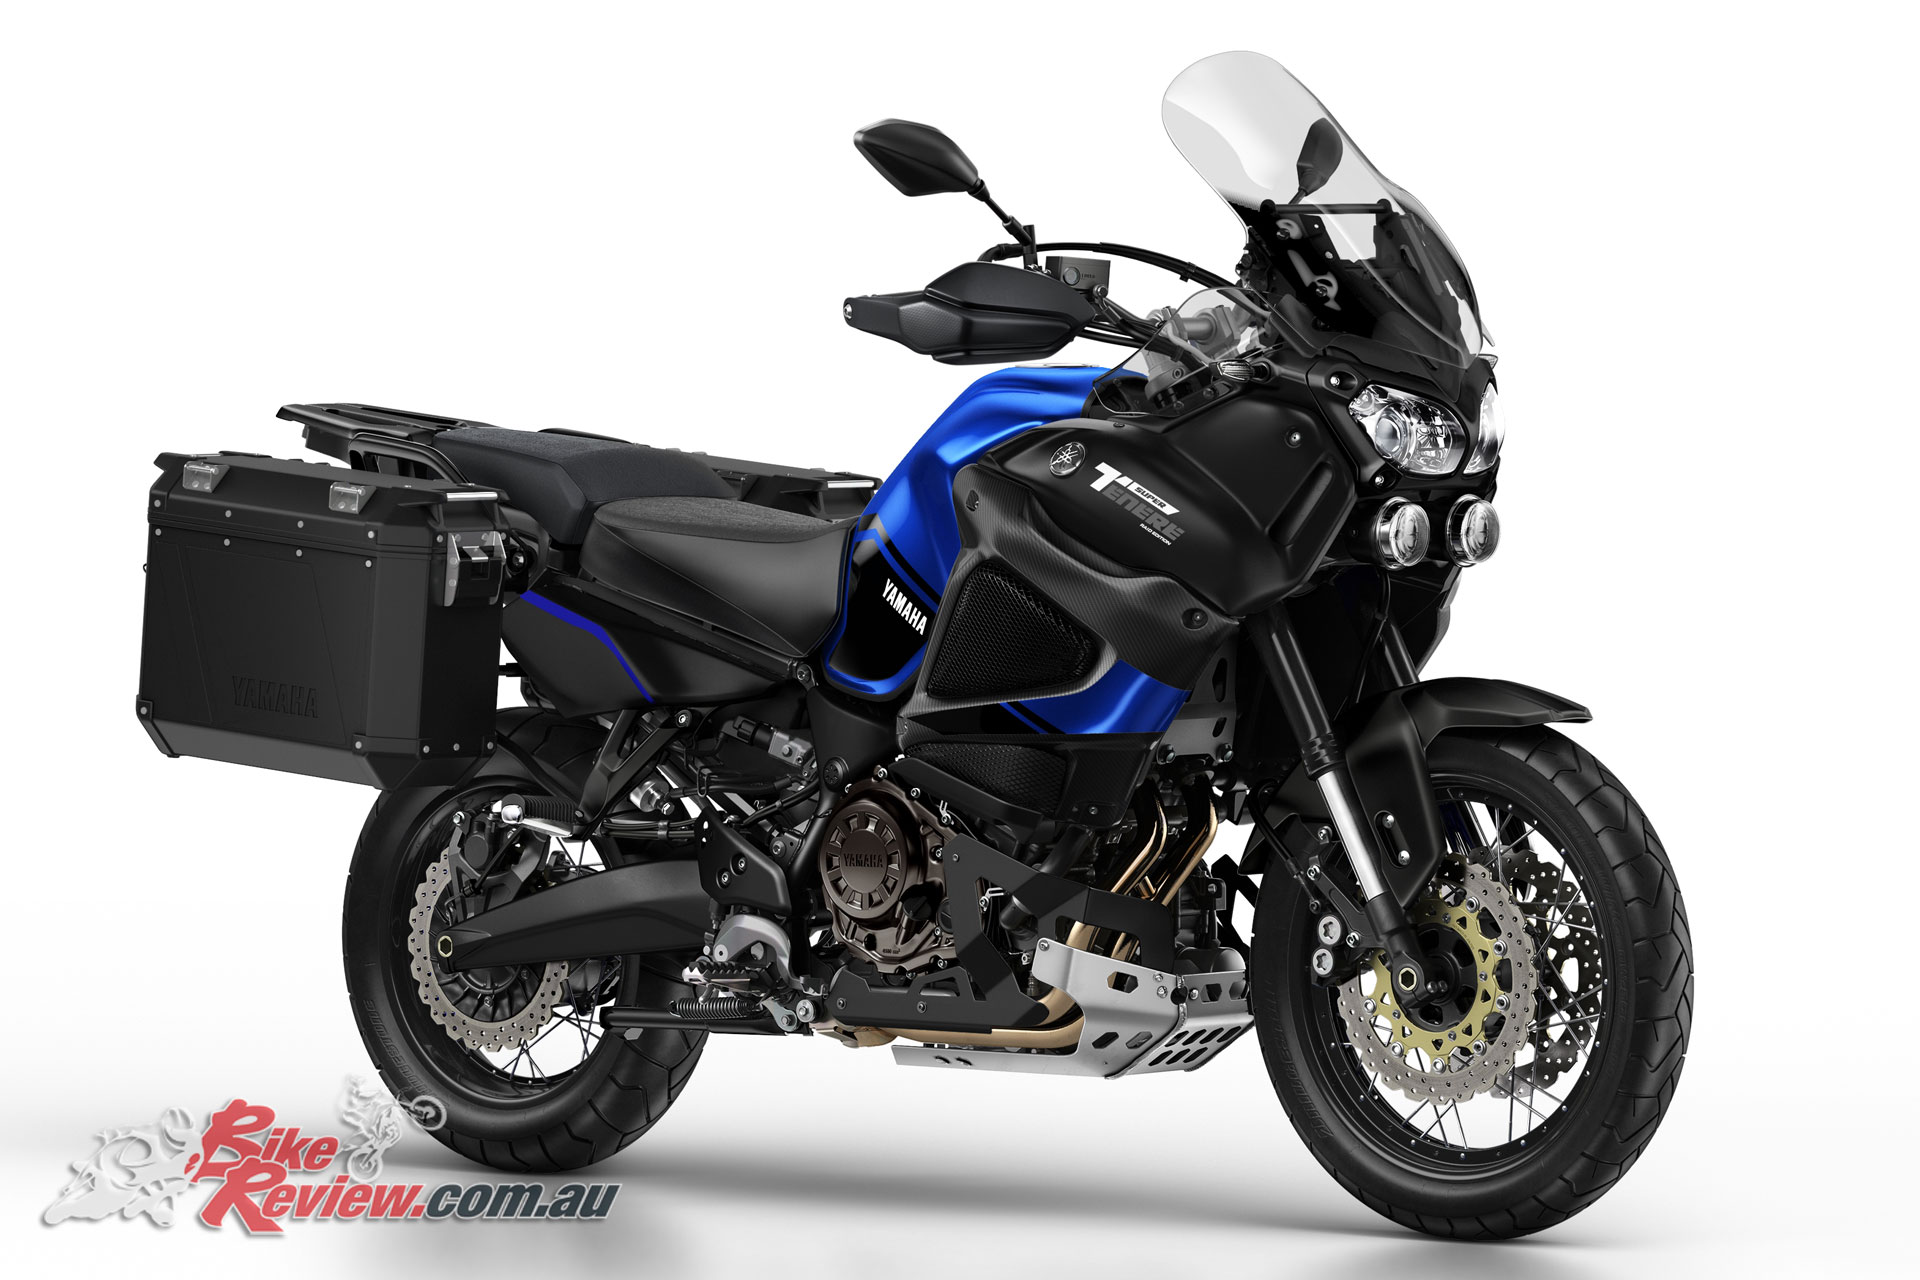 2018 yamaha super tenere raid edition updated yzf r1m bike review. Black Bedroom Furniture Sets. Home Design Ideas